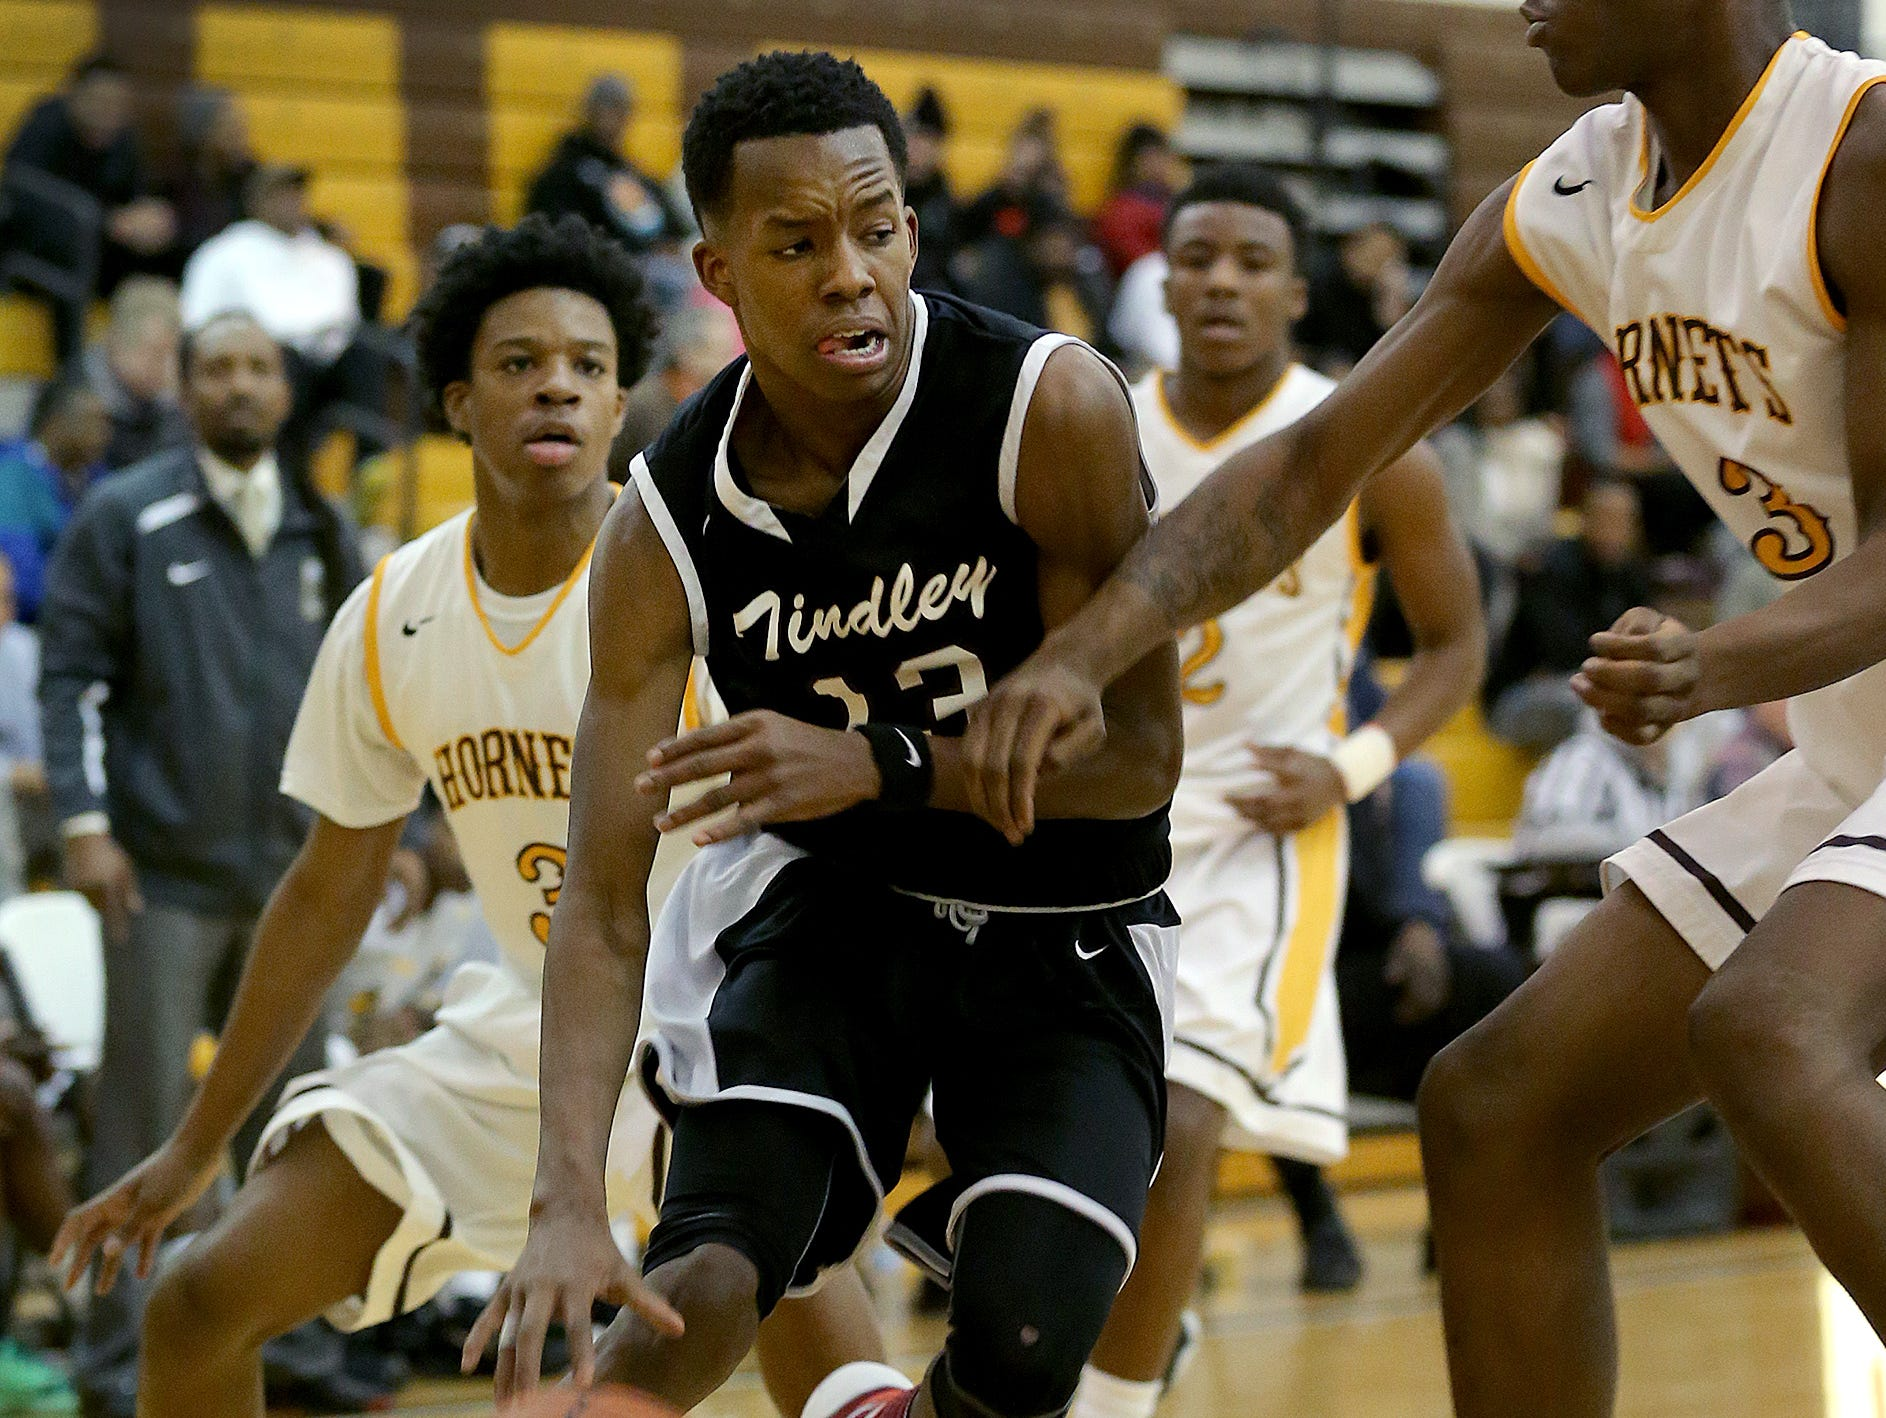 Tindley Tigers Eric Hunter (13) drives by Howe Hornets David Burns (43) and Jermaine Couch (3) in the first half of their Indianapolis City Boys Basketball Tournament Thursday, Jan 21, 2016, evening at Thomas Carr Howe High School.